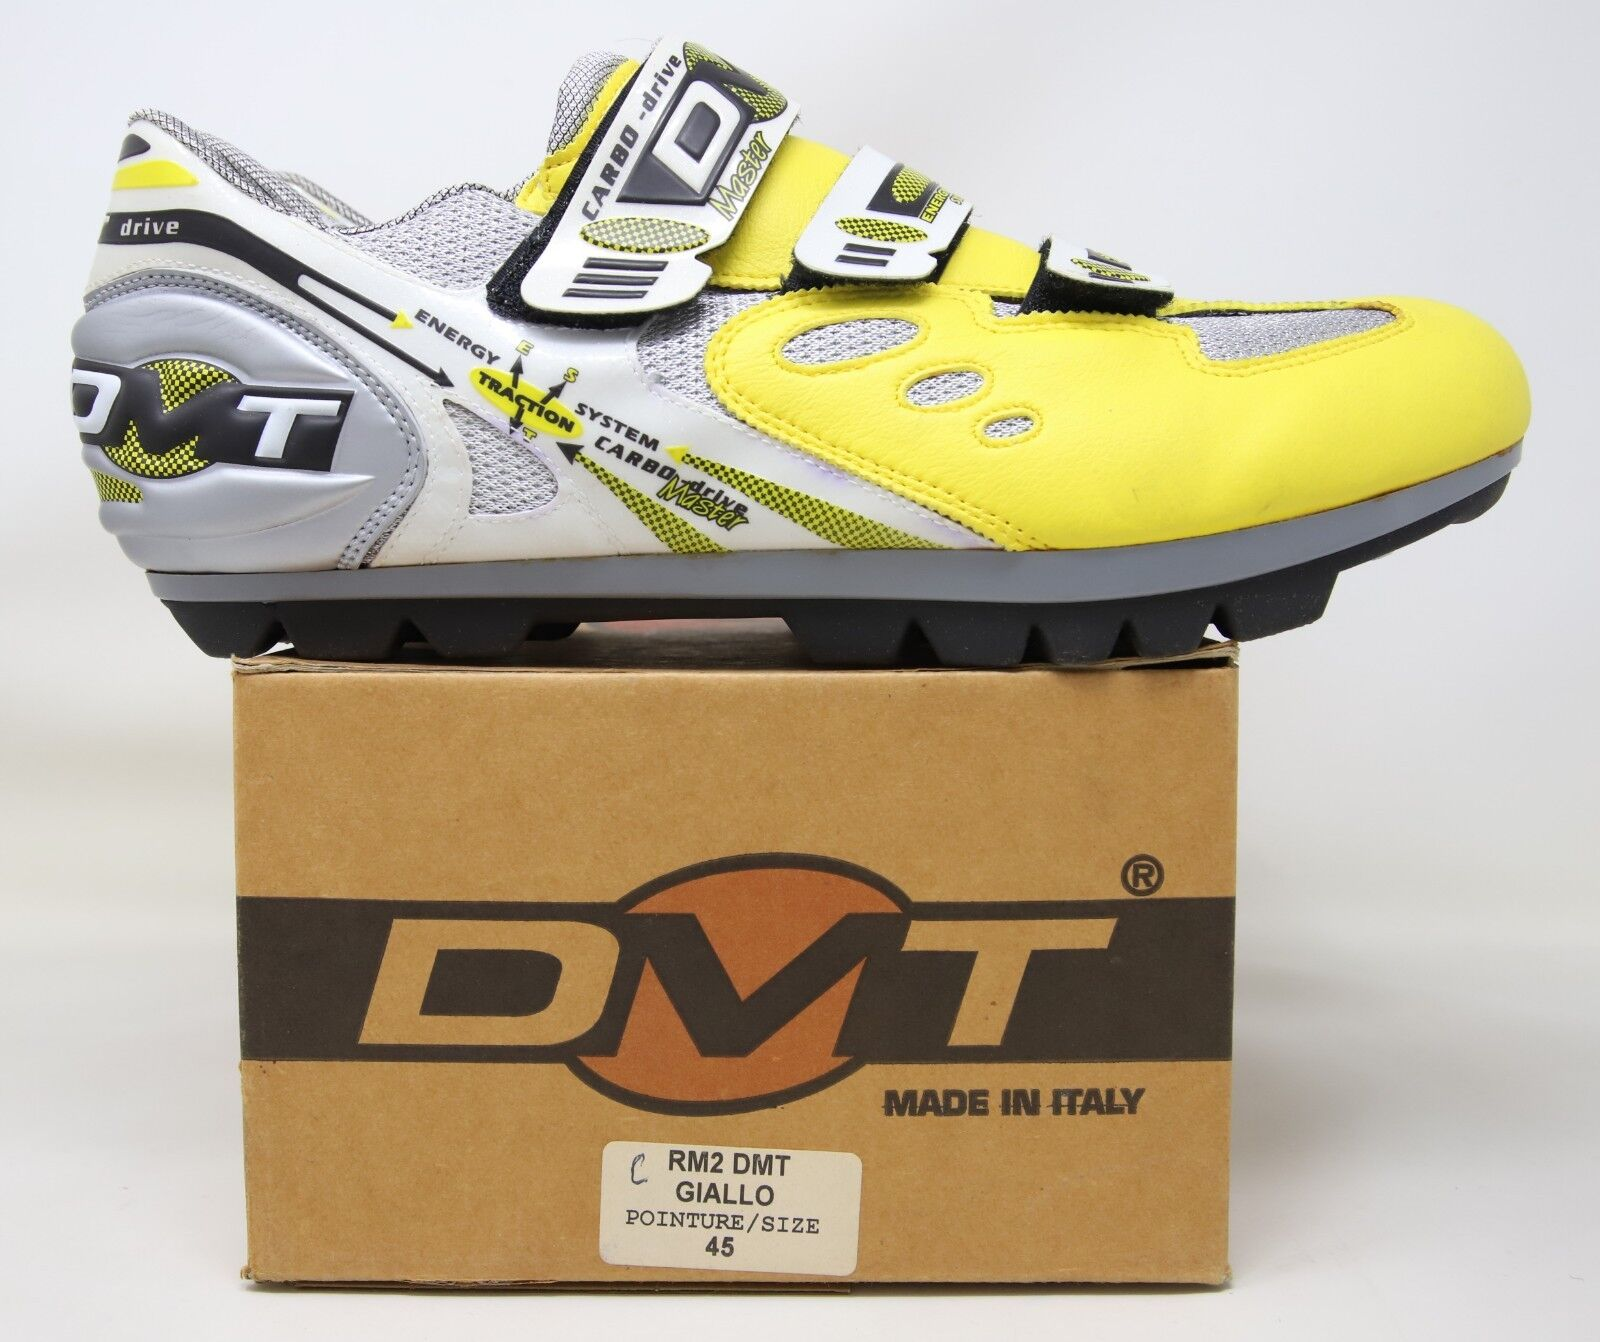 NOS  DMT RM2 MTB CYCLING SHOES SIZE MADE IN ITALY NIB  there are more brands of high-quality goods